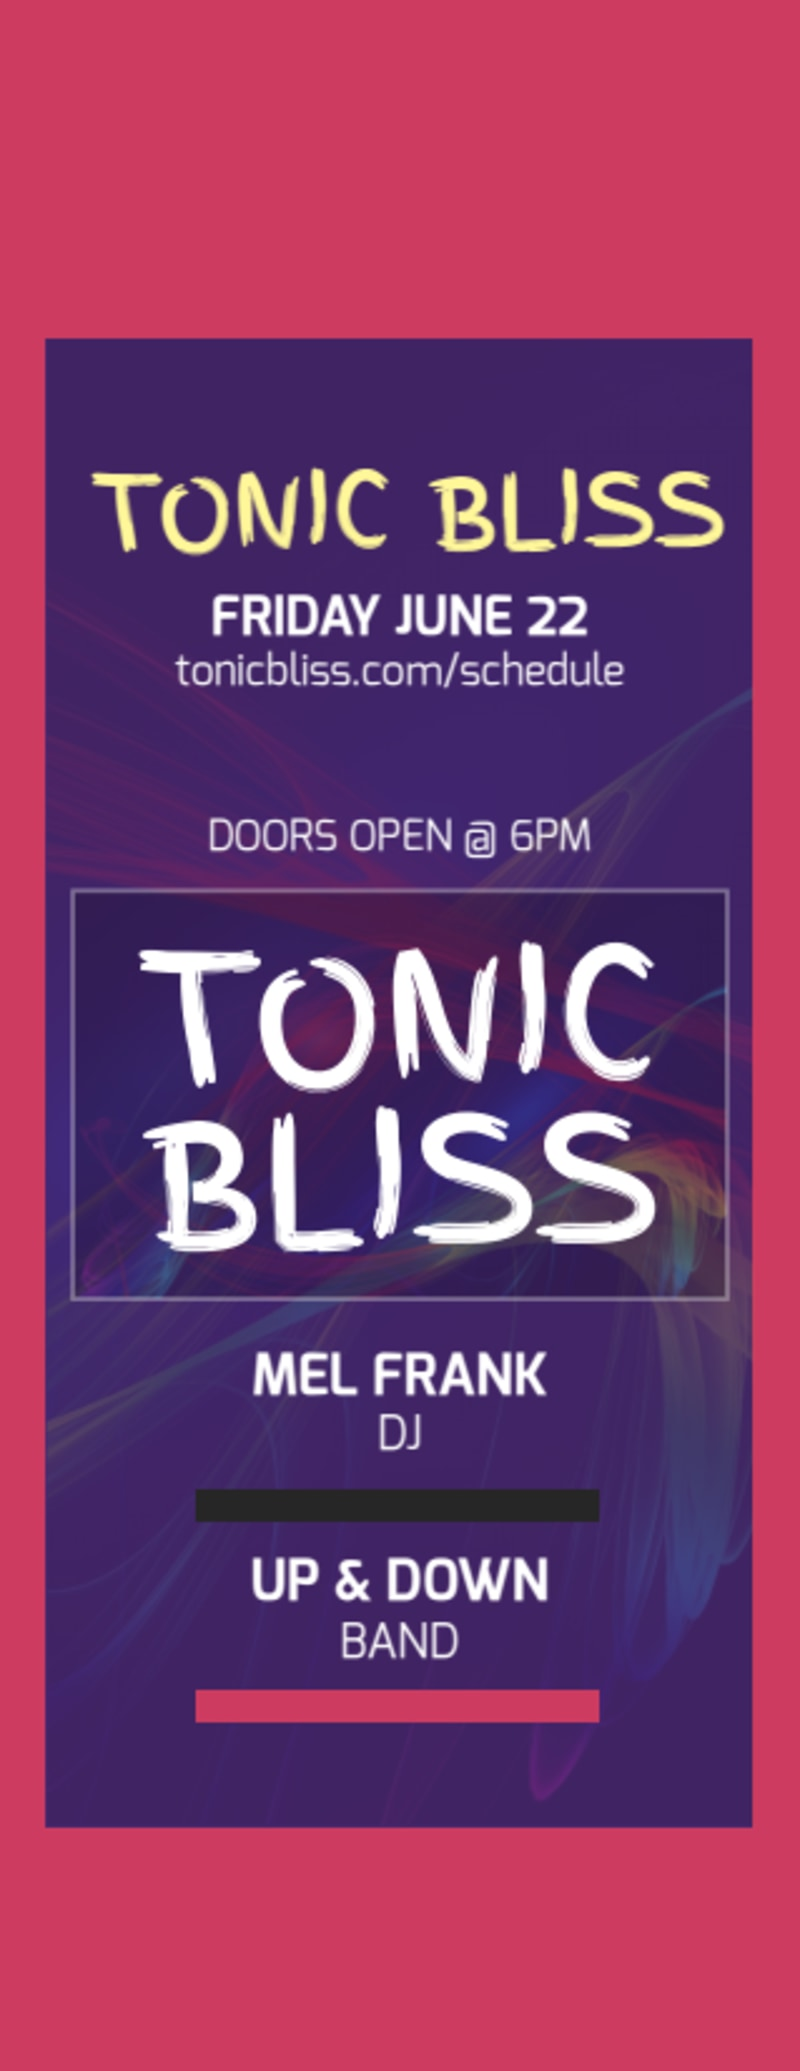 Tonic Bliss Music Concert Ticket Template Preview 2